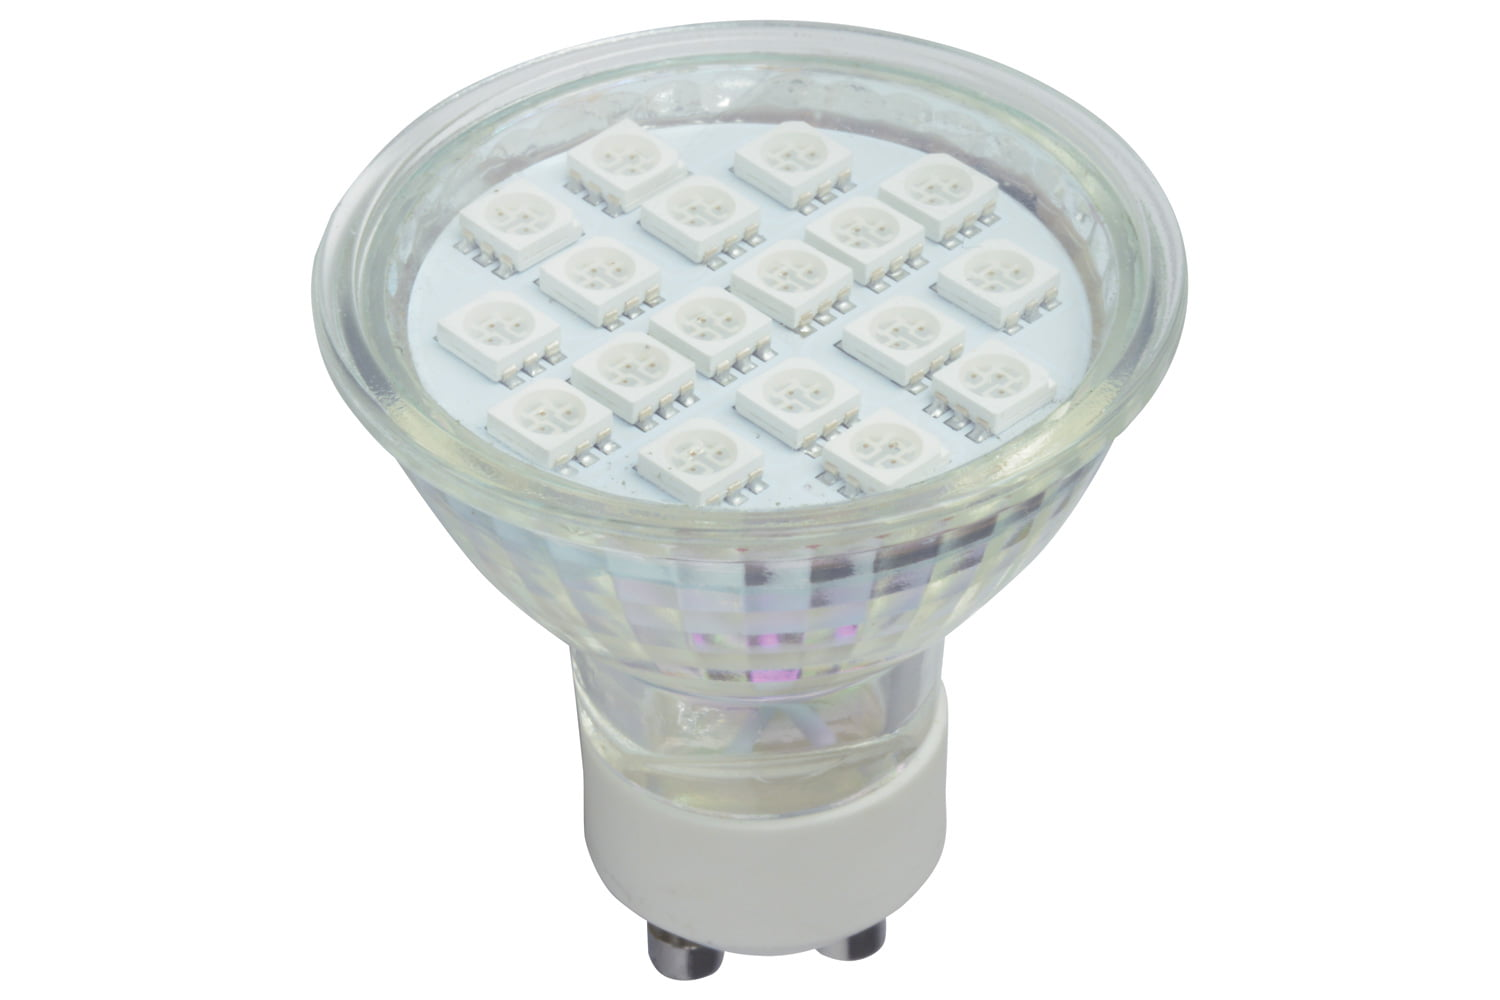 Gu led lamps red yellow blue designed for standard gu fittings